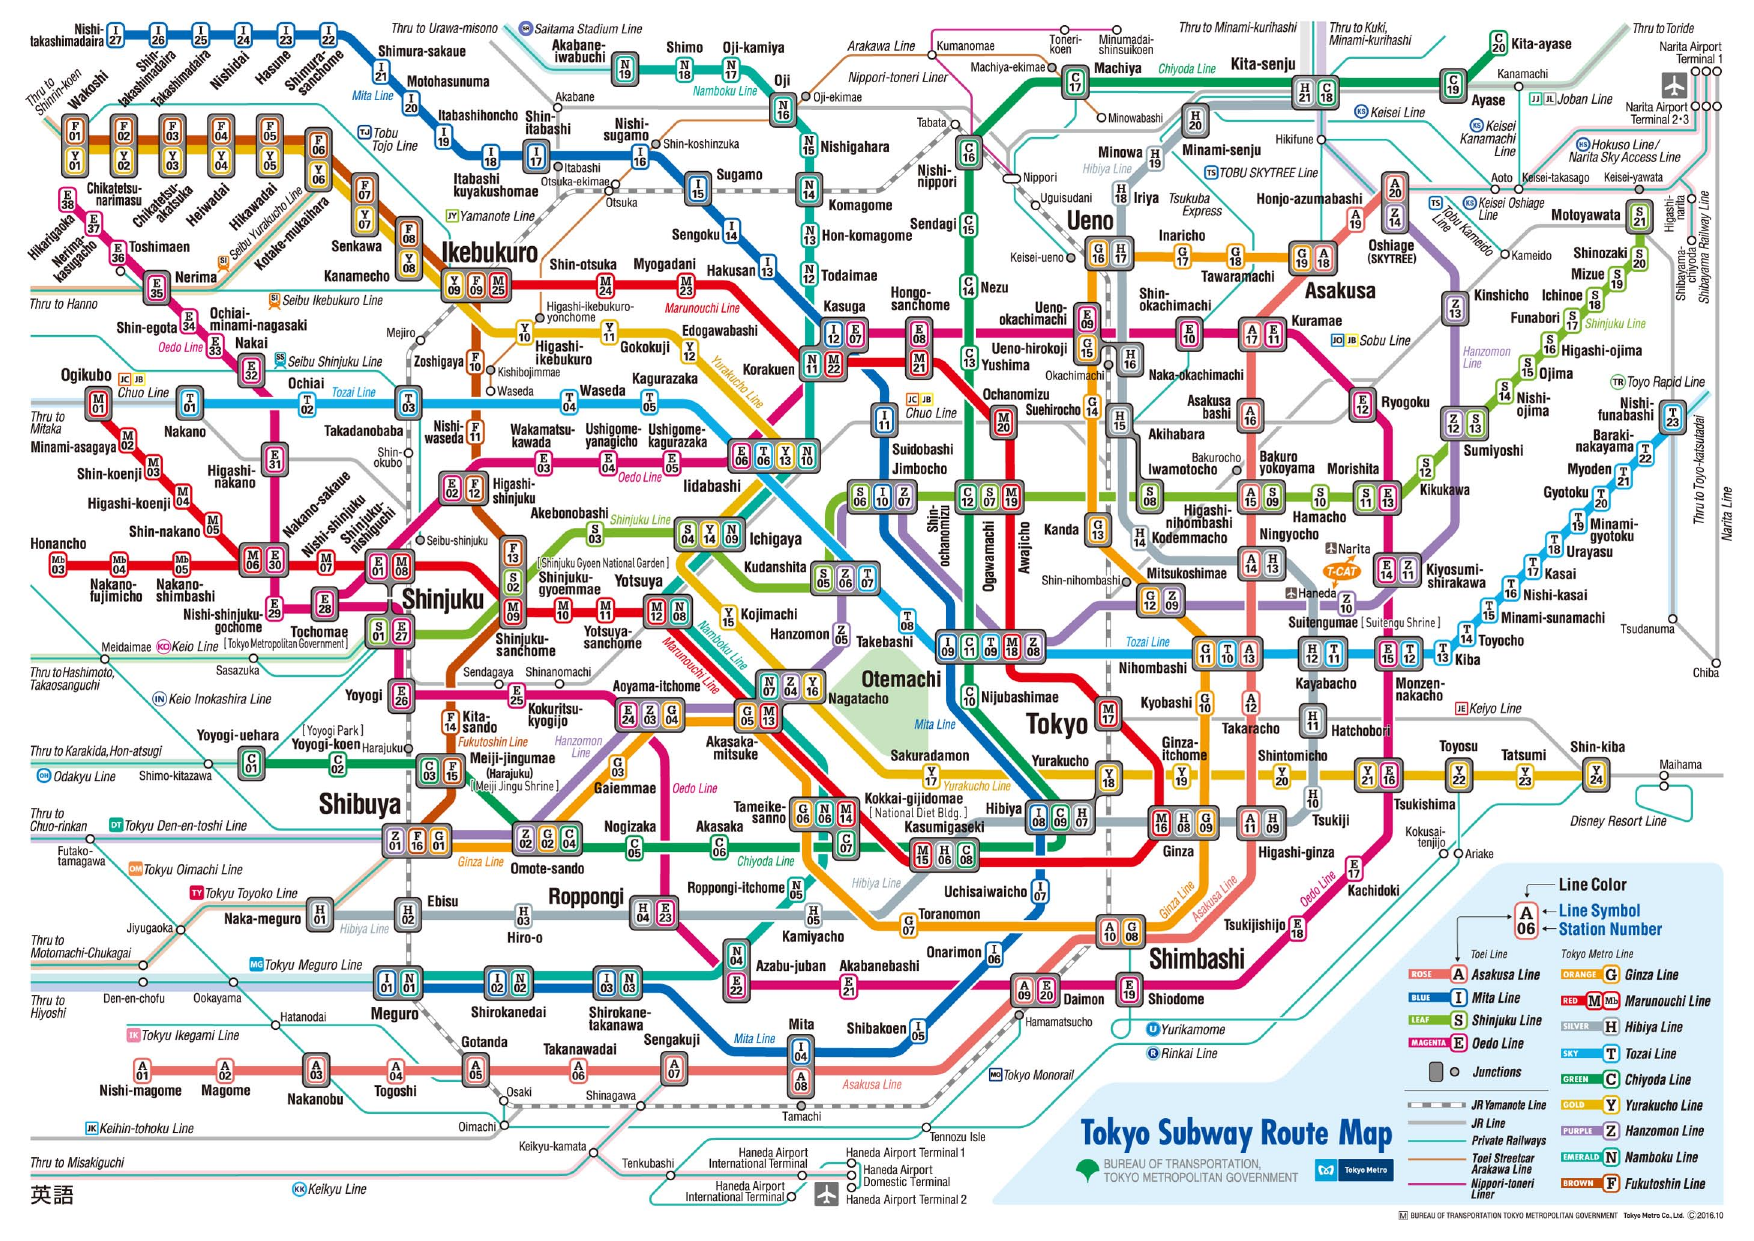 the Tokyo subway map (complex)